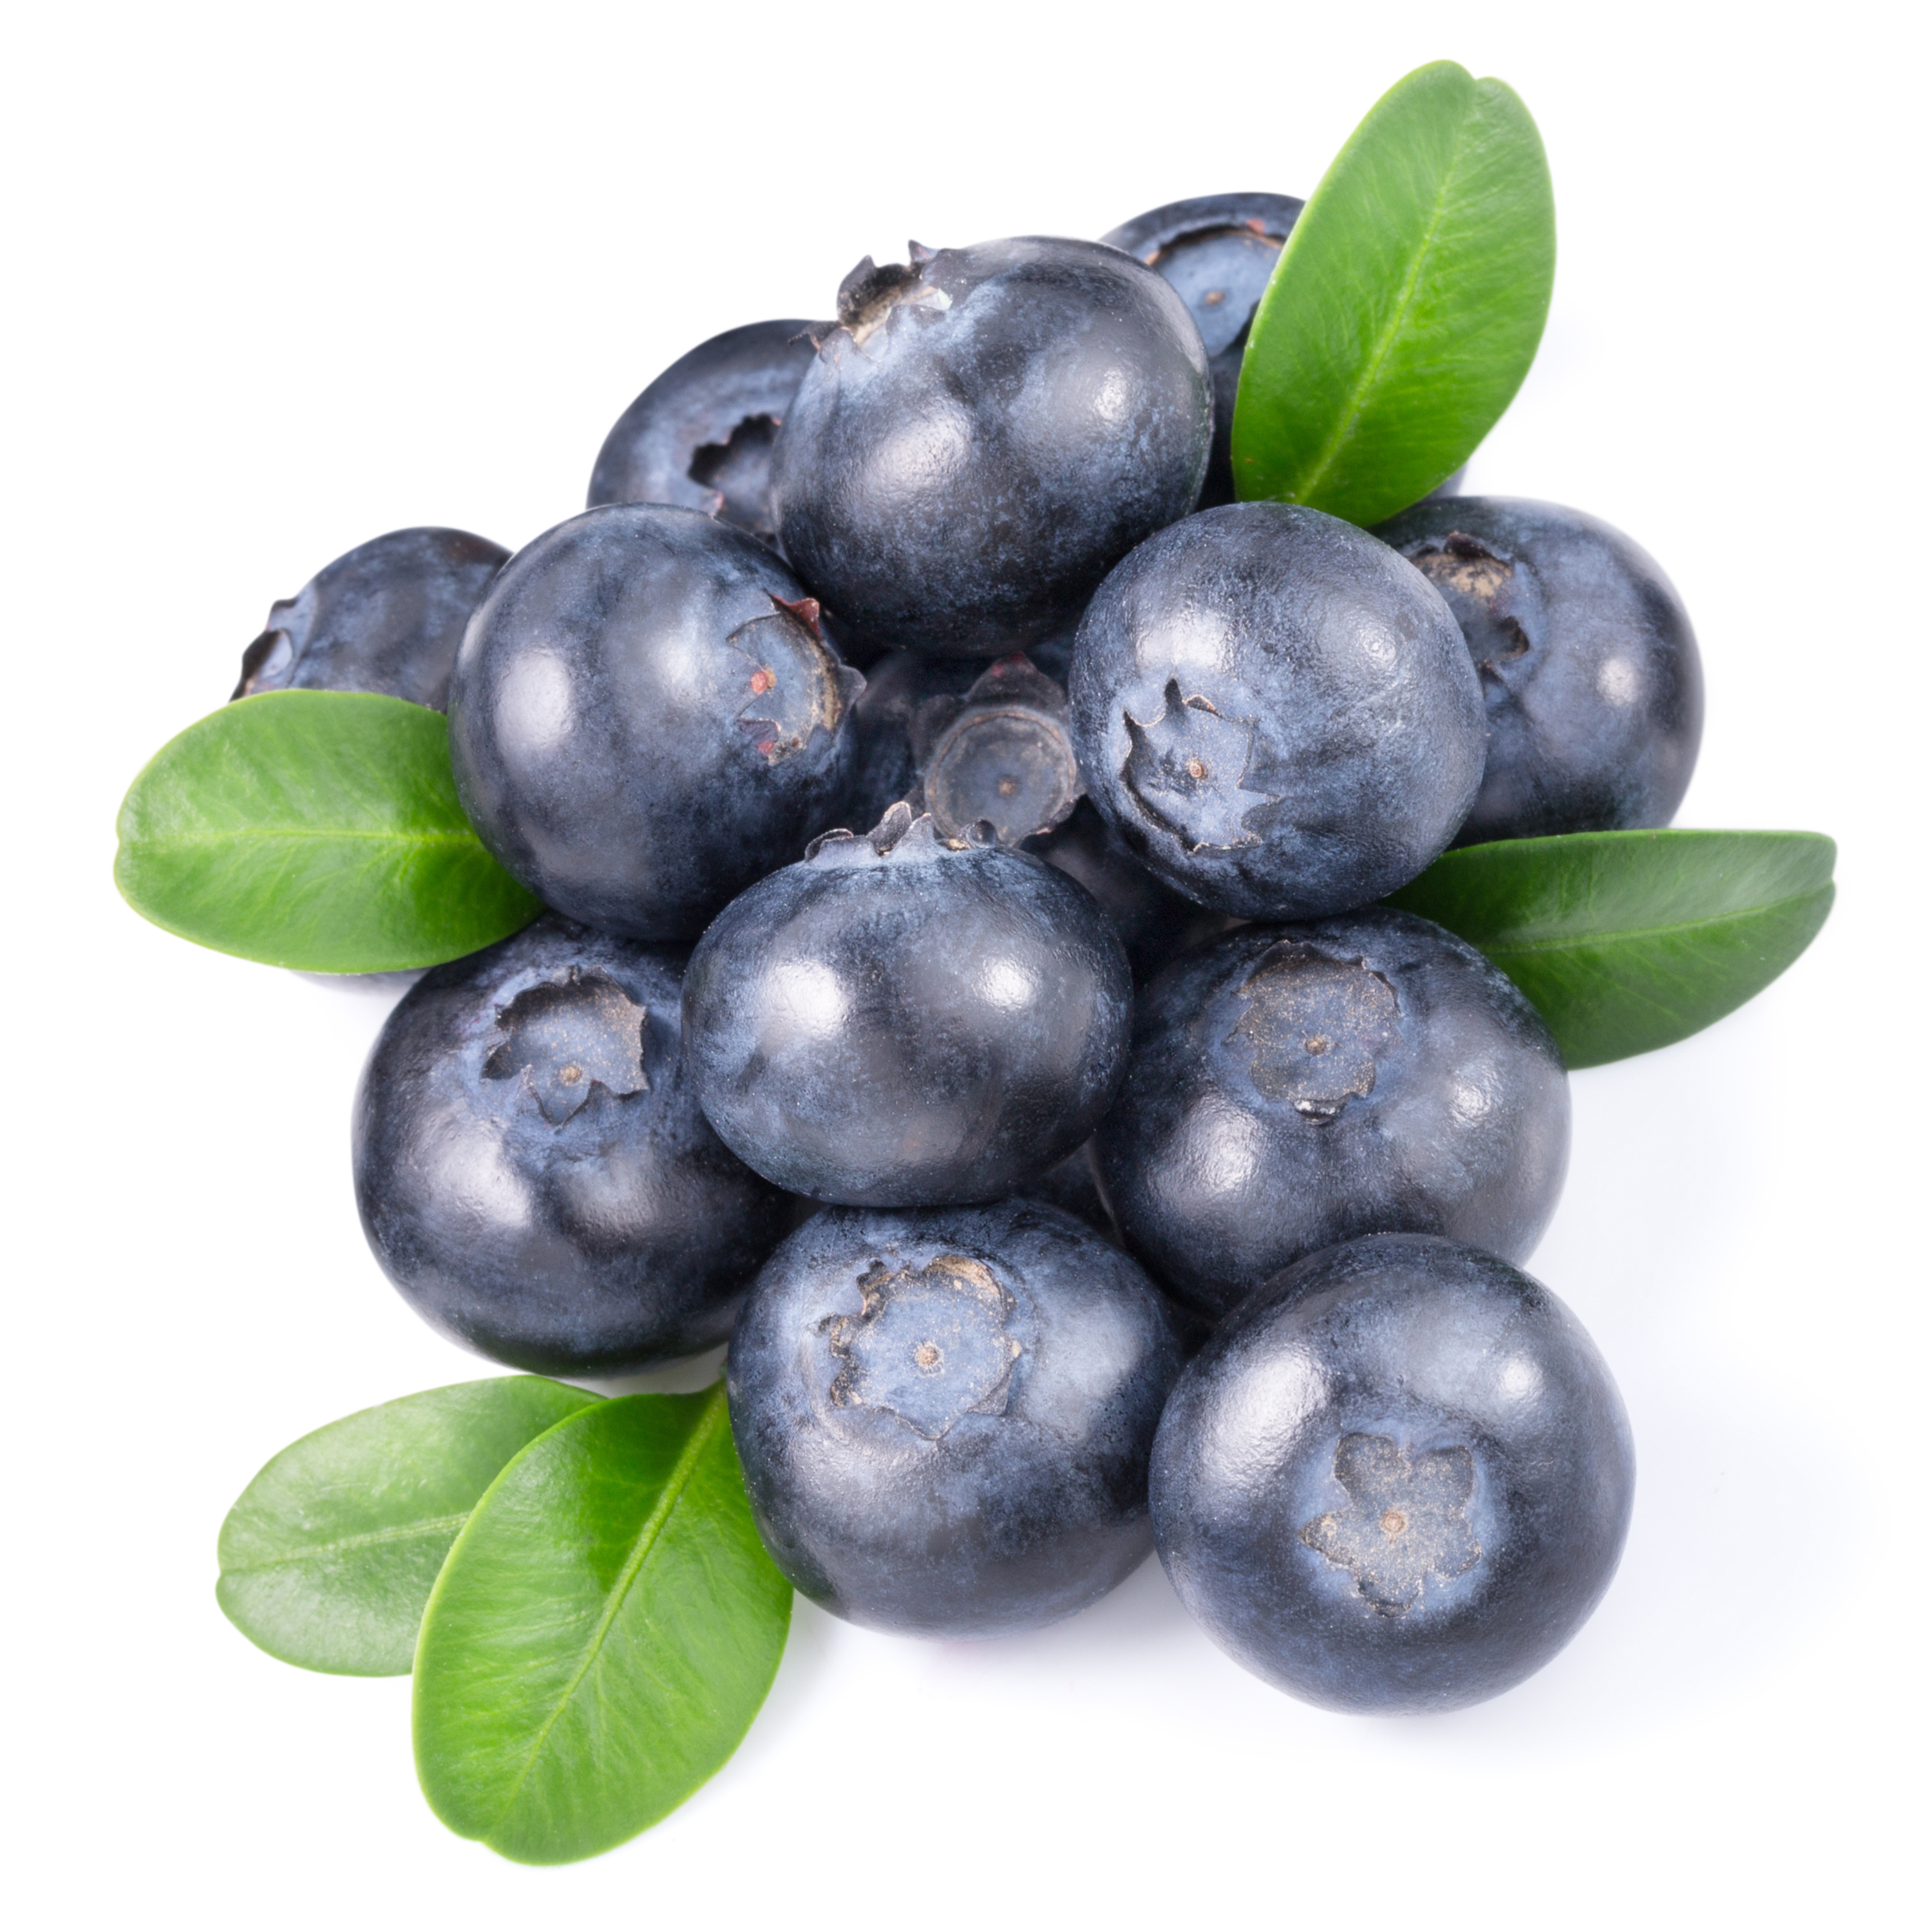 Wholesale Perfect Pact Fresh Blueberries sourced from family farms in the USA